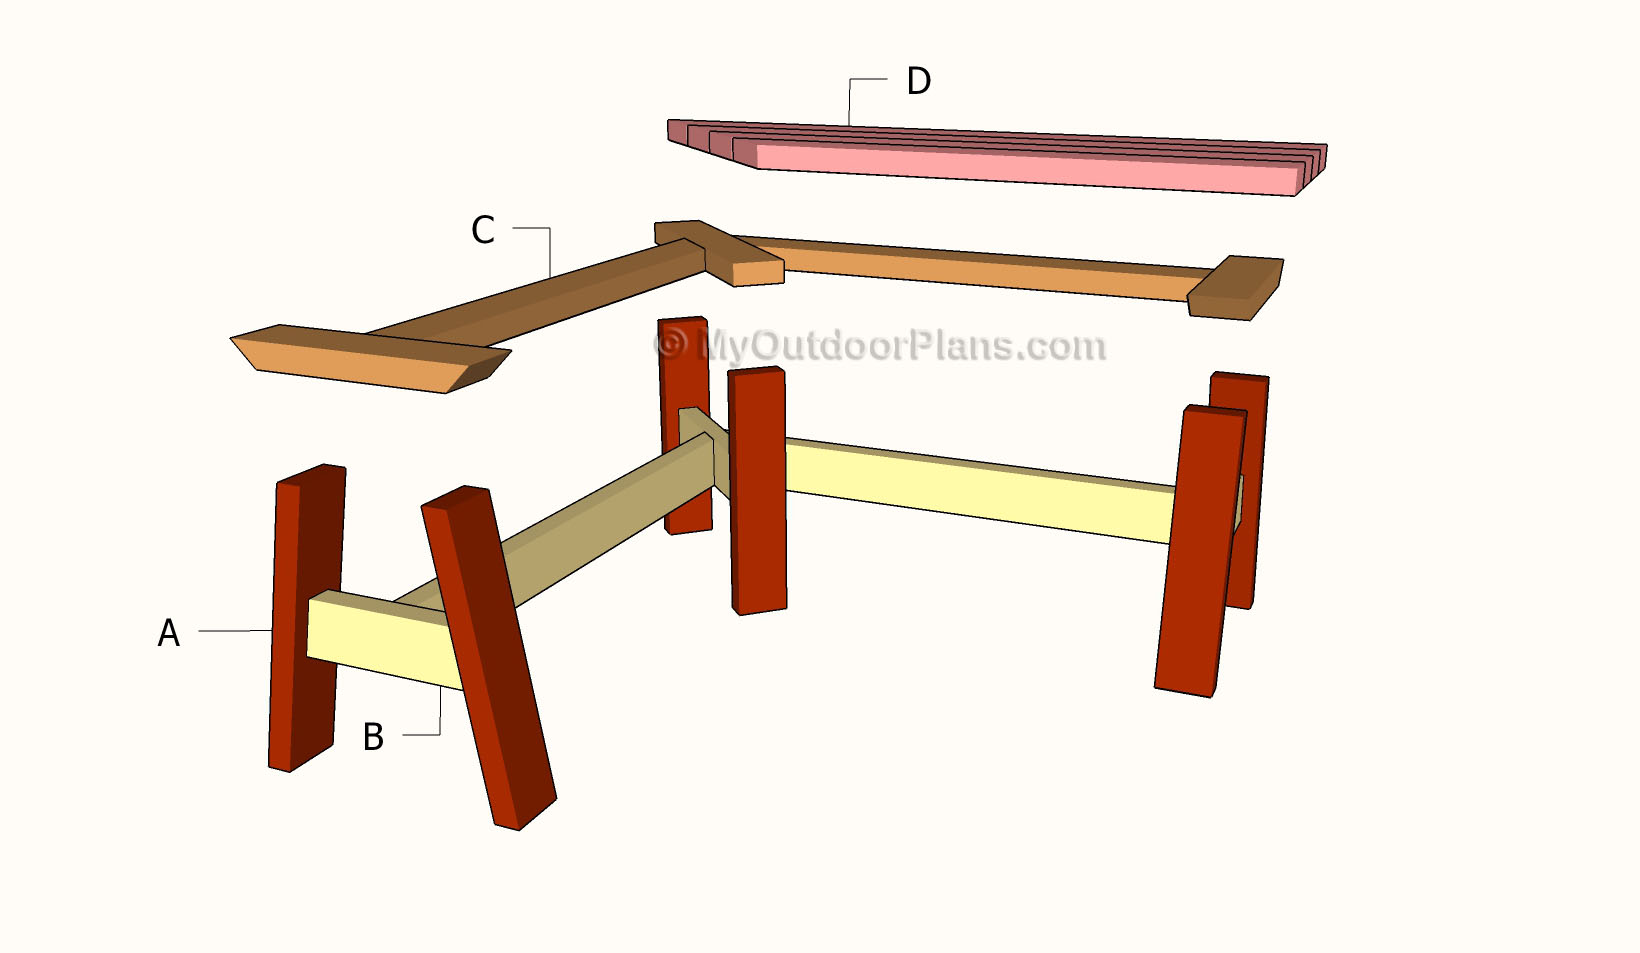 Corner Bench Plans | Free Outdoor Plans - DIY Shed, Wooden Playhouse ...